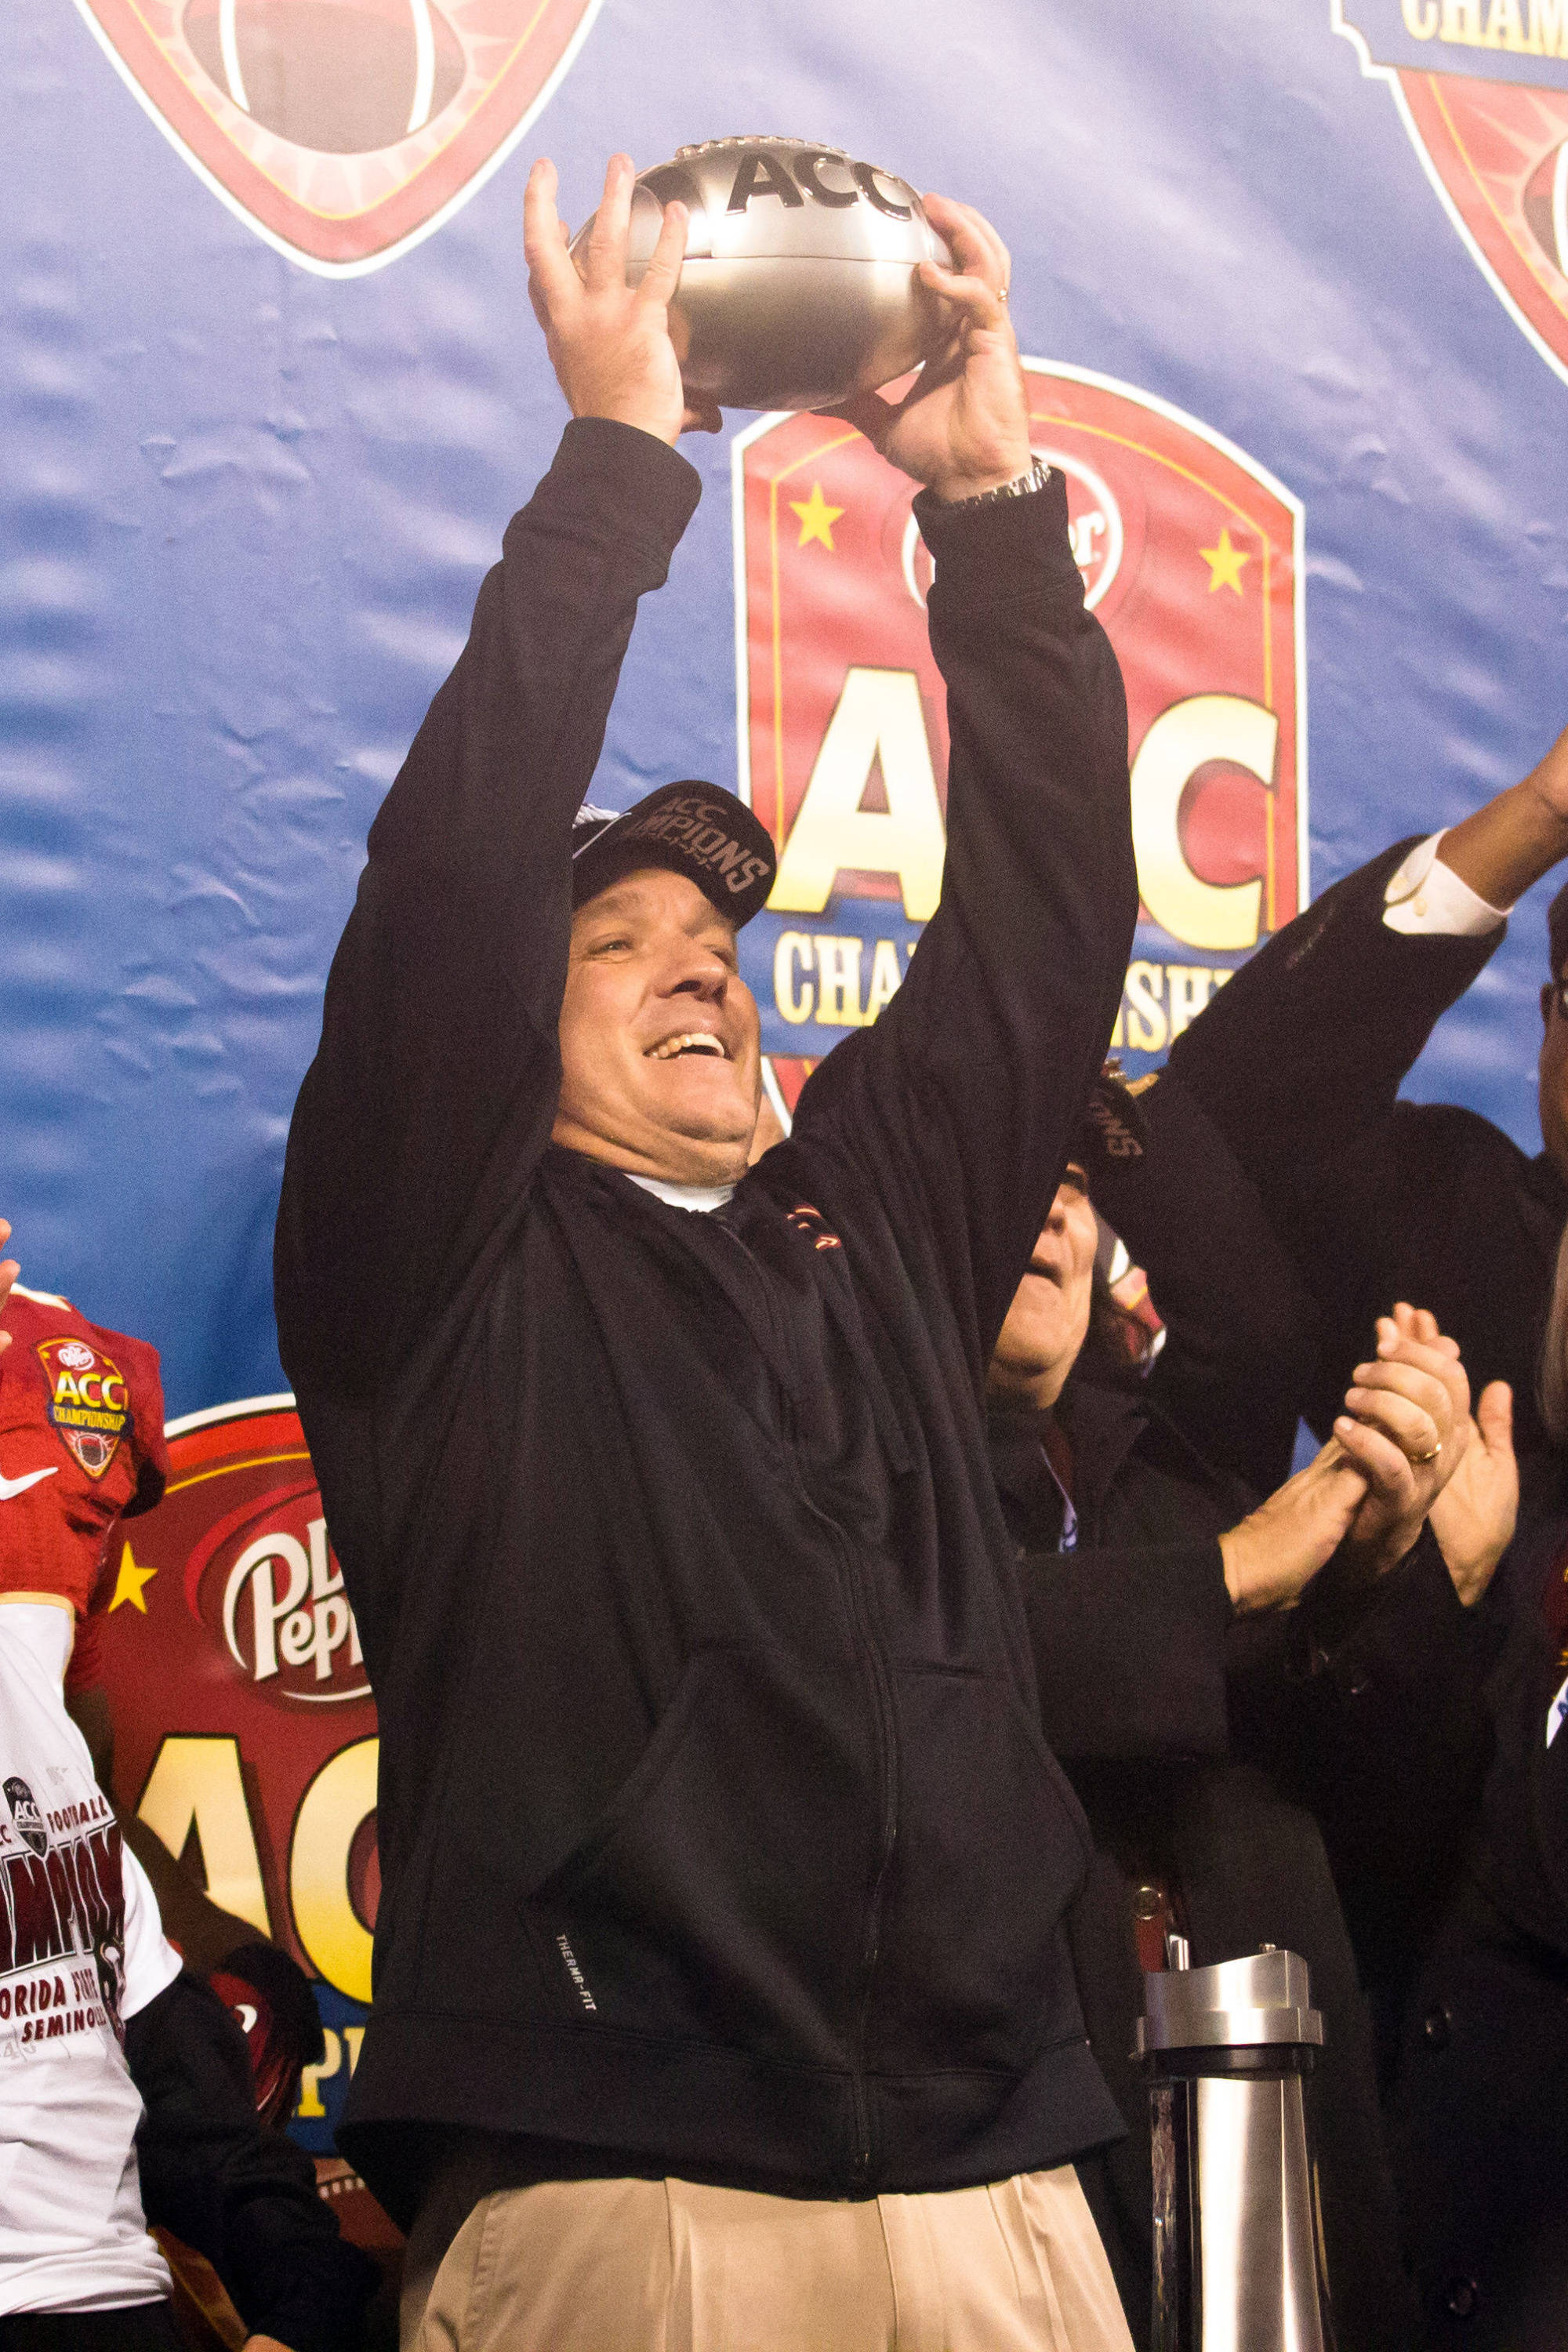 Dec 7, 2013; Charlotte, NC, USA; Florida State Seminoles head coach Jimbo Fisher holds up part of the ACC trophy after defeating the Duke Blue Devils at Bank of America Stadium. FSU defeated Duke 45-7. Mandatory Credit: Jeremy Brevard-USA TODAY Sports